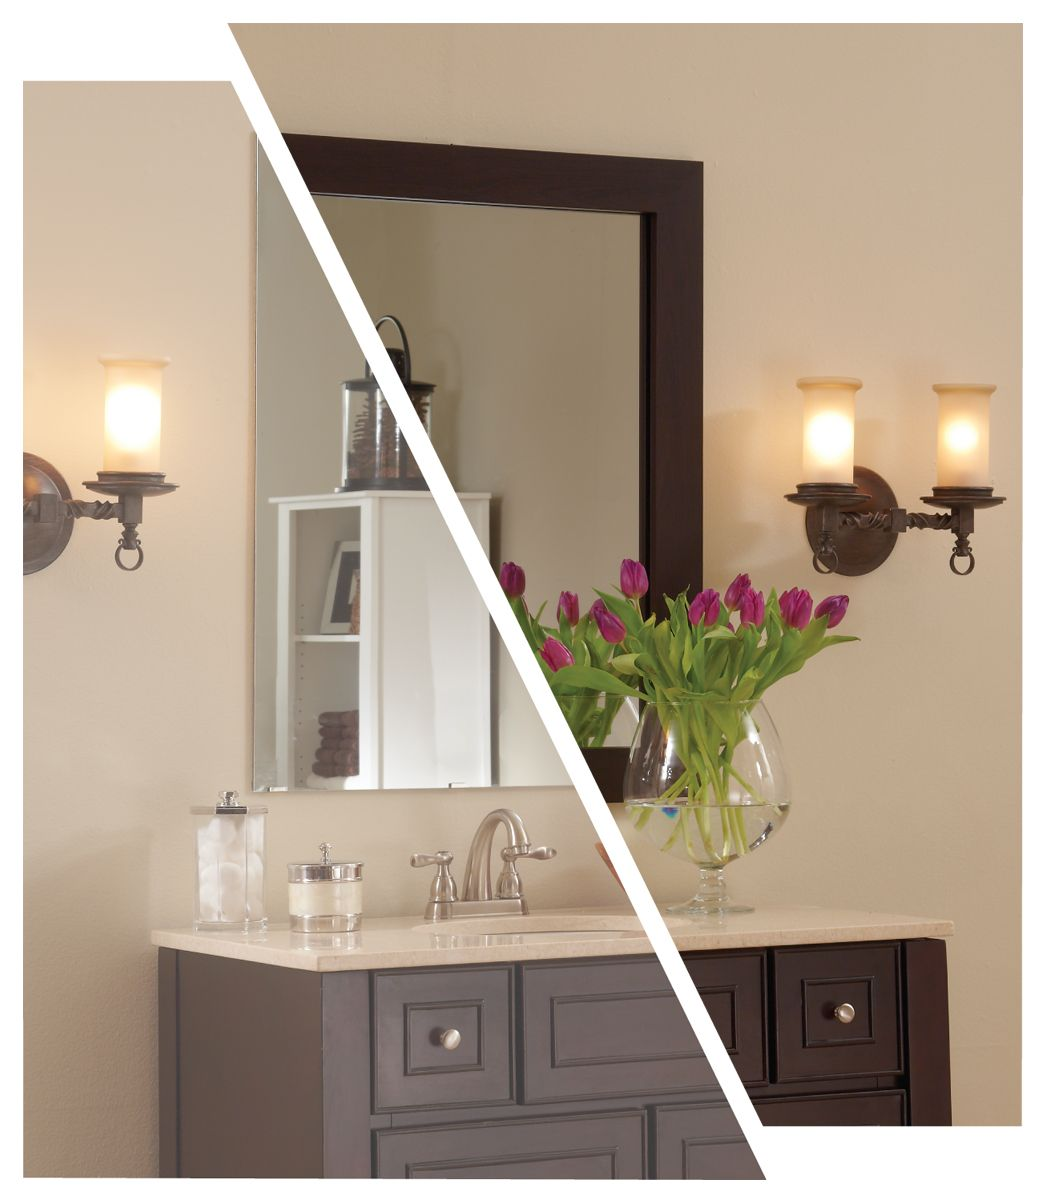 Turn Your Plain Bathroom Mirror Into A Pretty Framed With MirrorMate